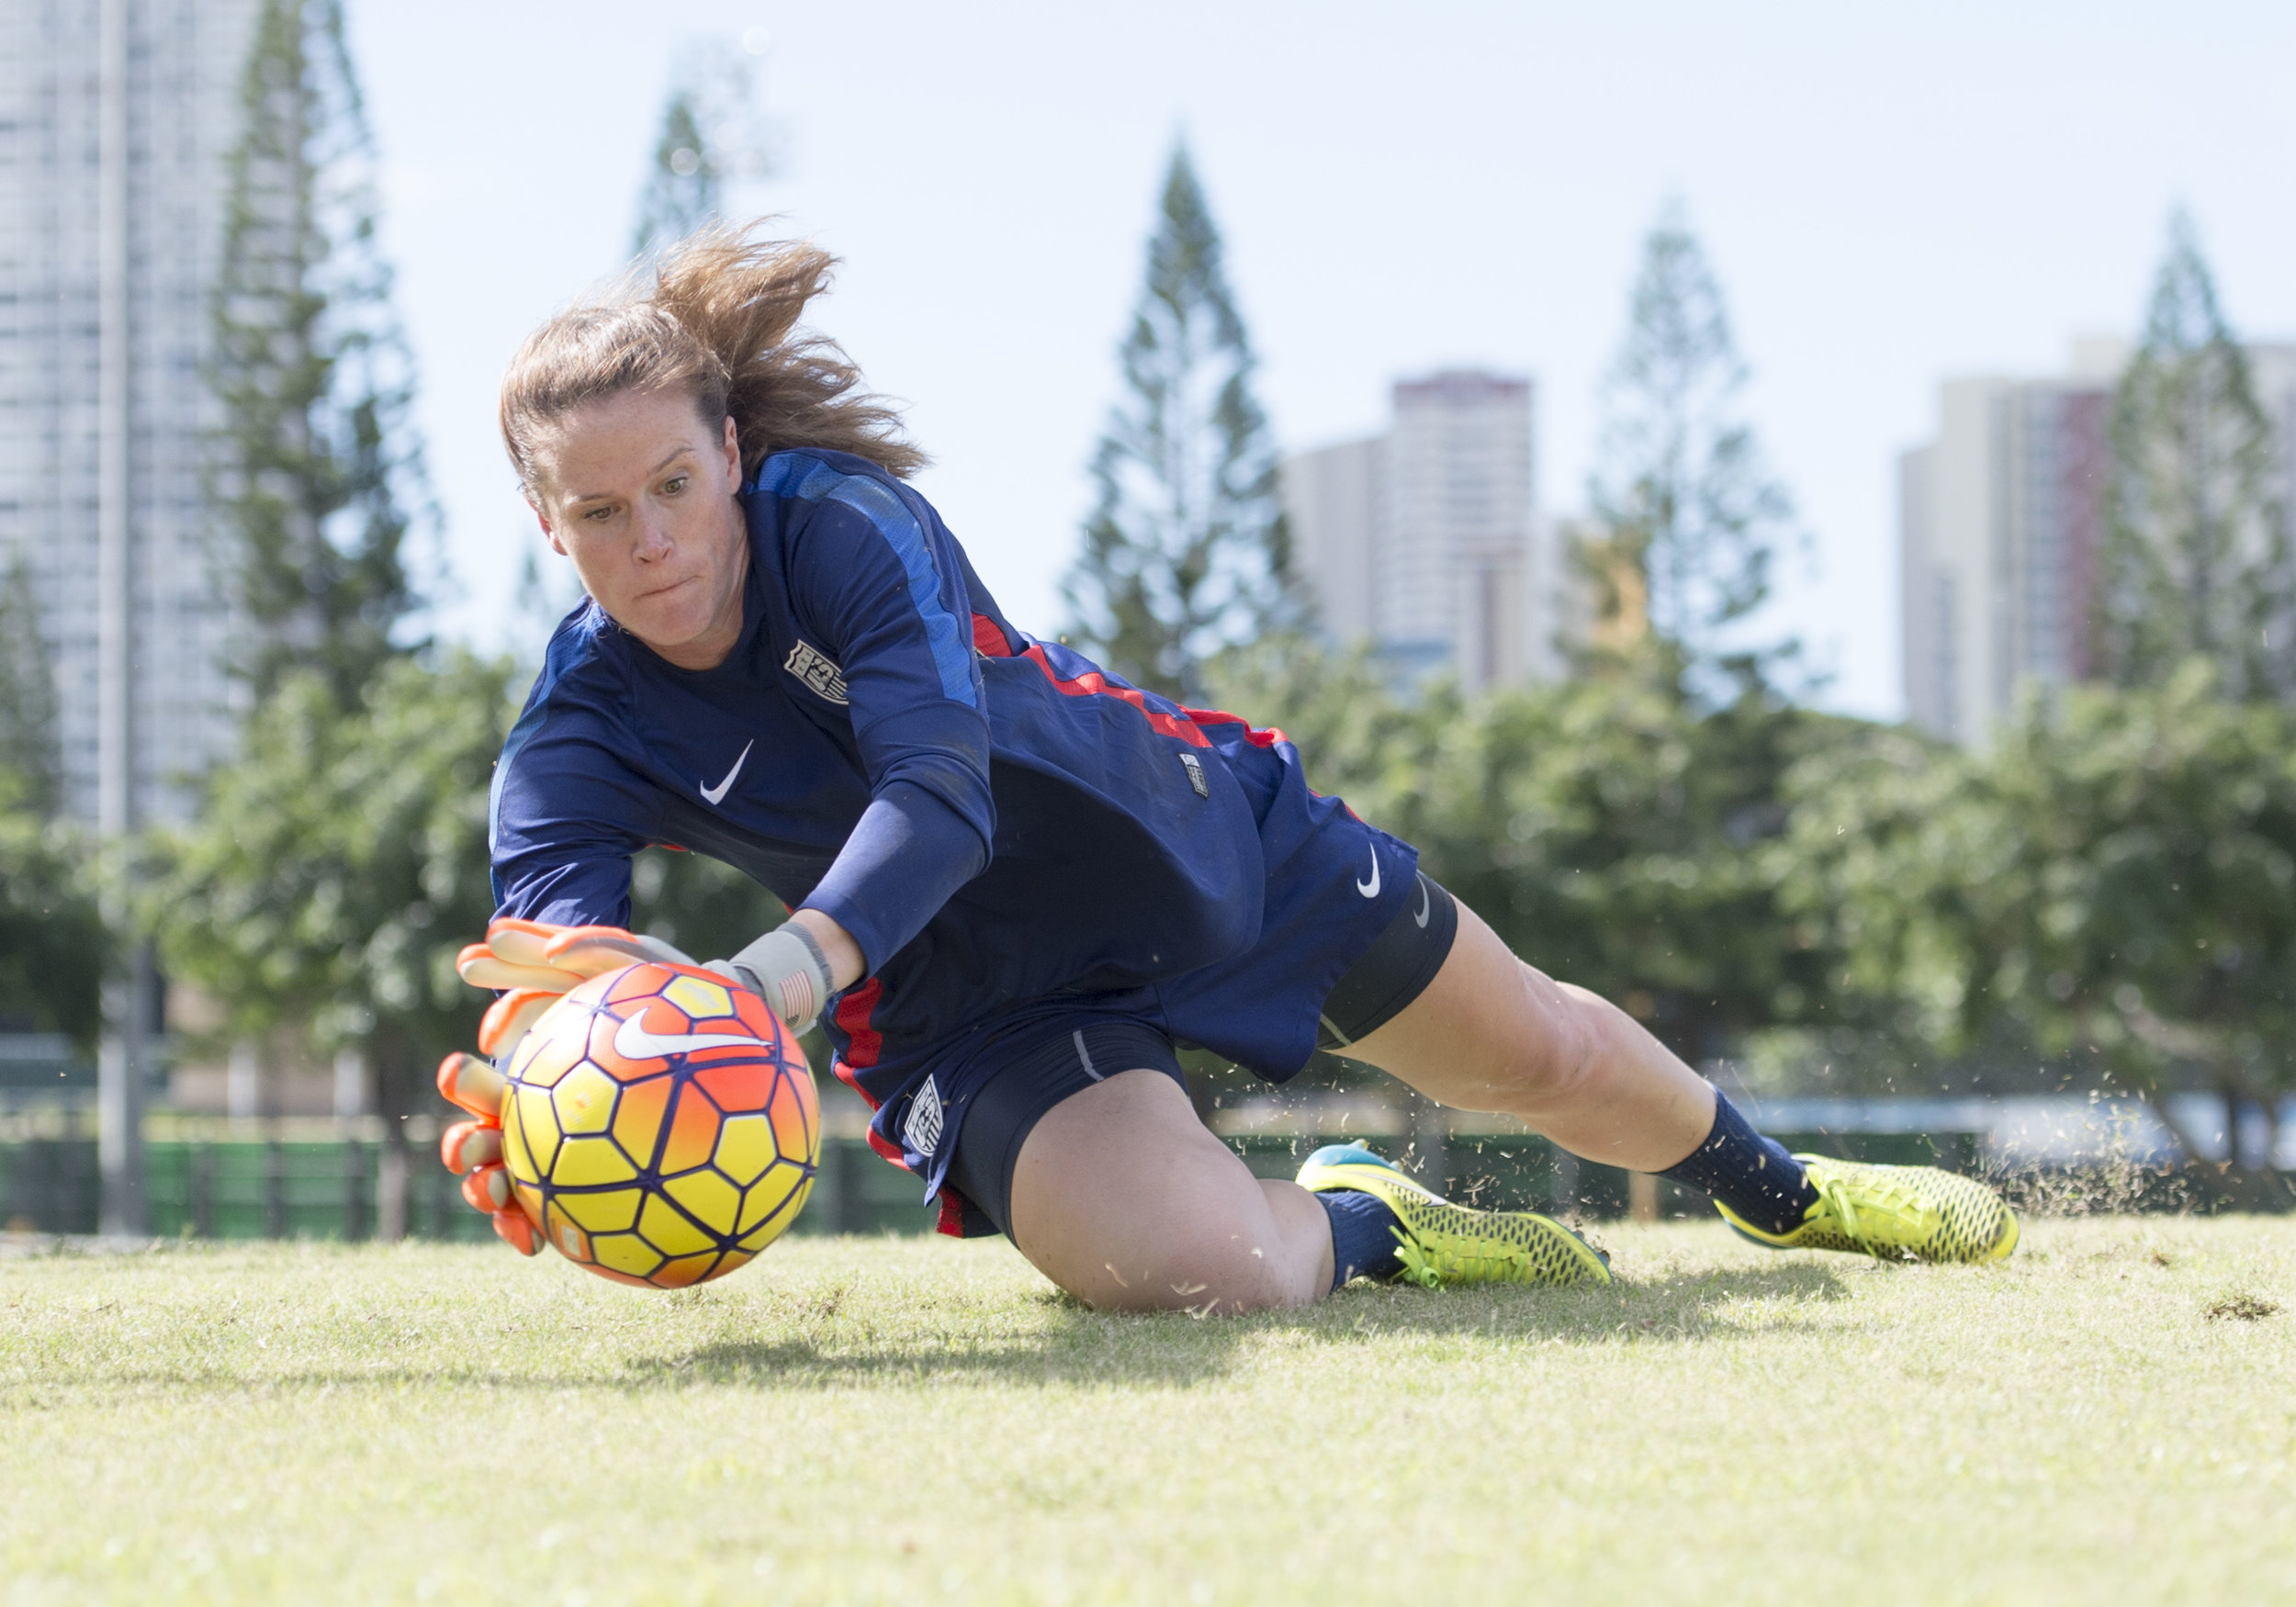 Honolulu, HI - December 3, 2015: The USWNT trained in preparation for their game against Trinidad & Tobago during the Victory Tour. Photo by Brad Smith